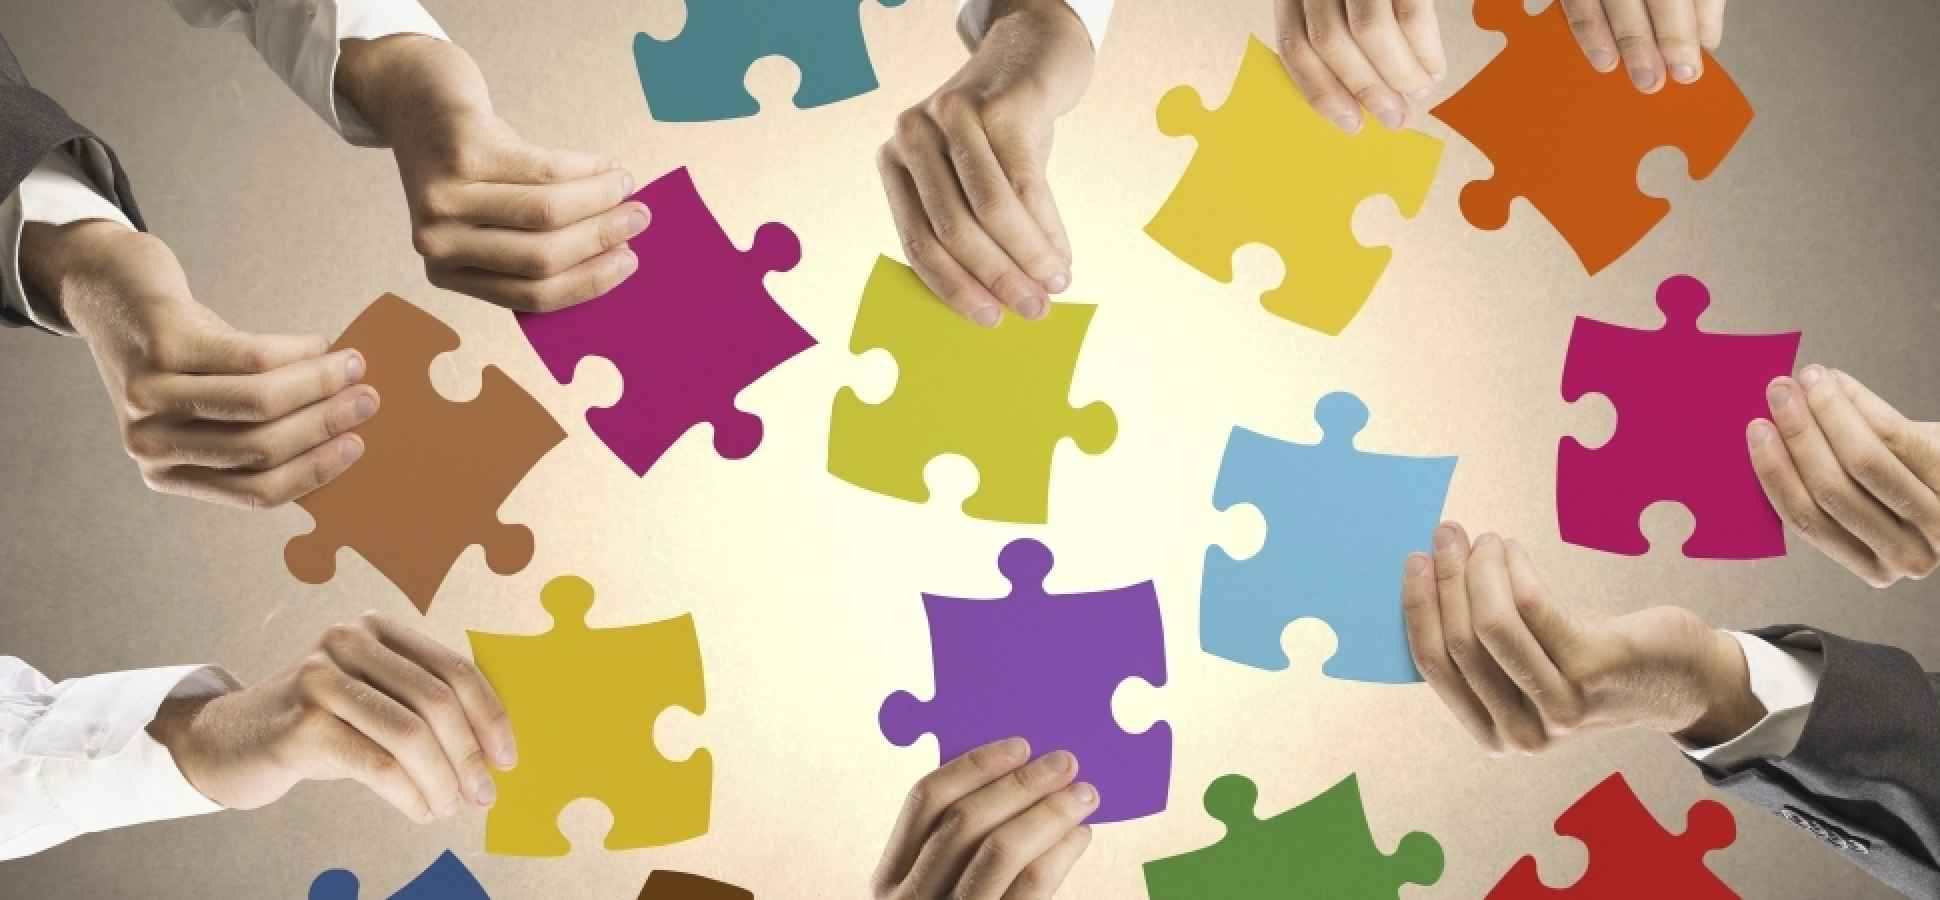 Three Things that Sales and Marketing Leaders Need to Learn from Each Other